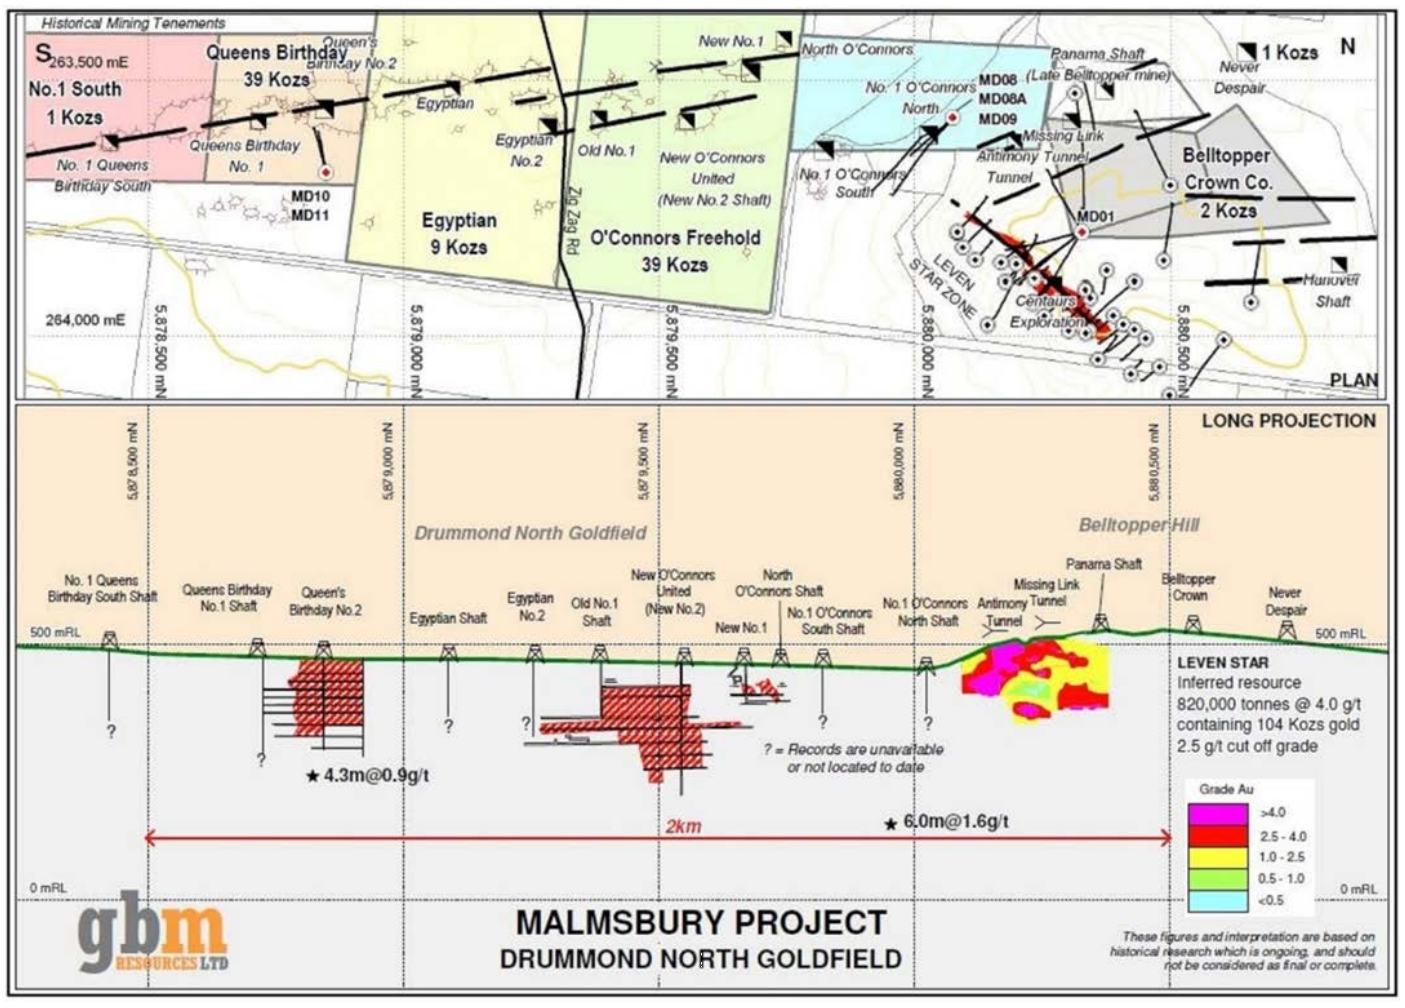 Figure: Resources and past production of the Malmsbury Gold Project, Surface Plan (top) and Long Projection (bottom).